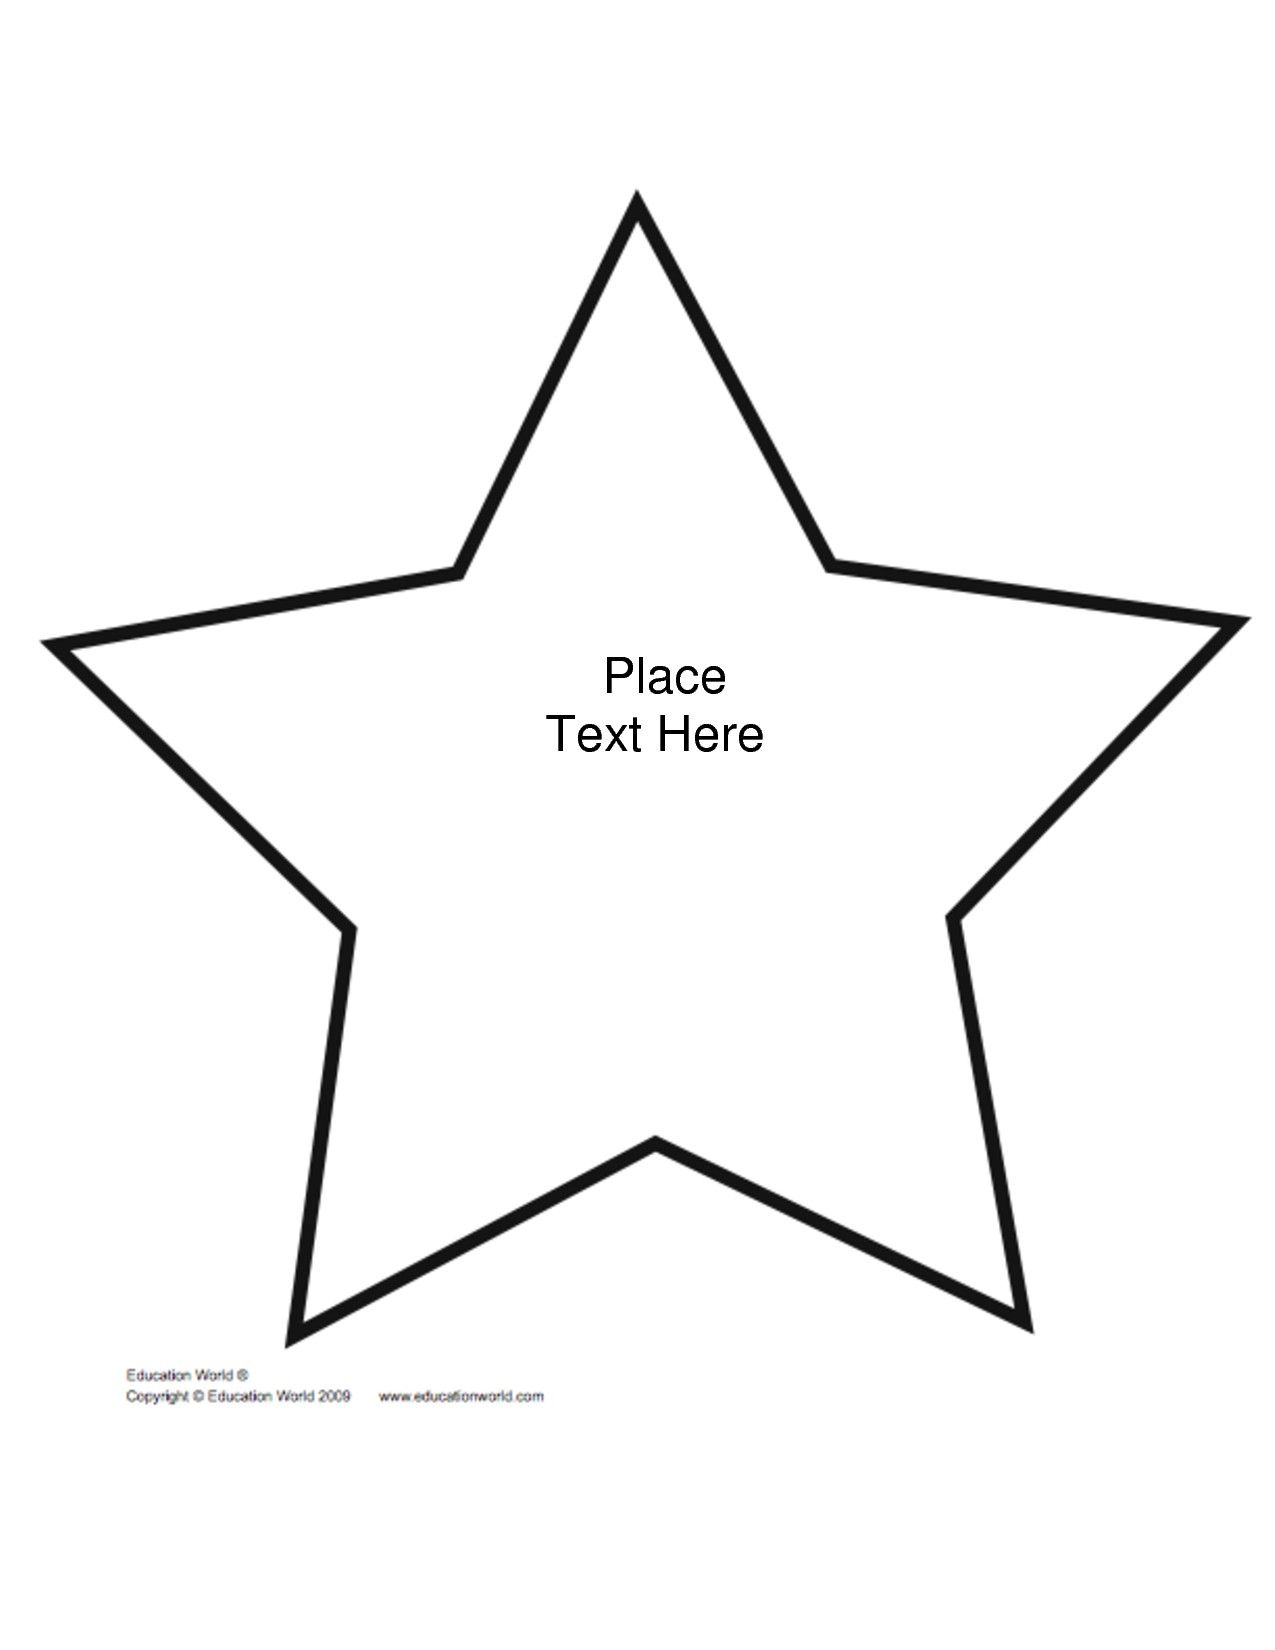 Printable shape star template bedtime story bookfair for Small star template printable free